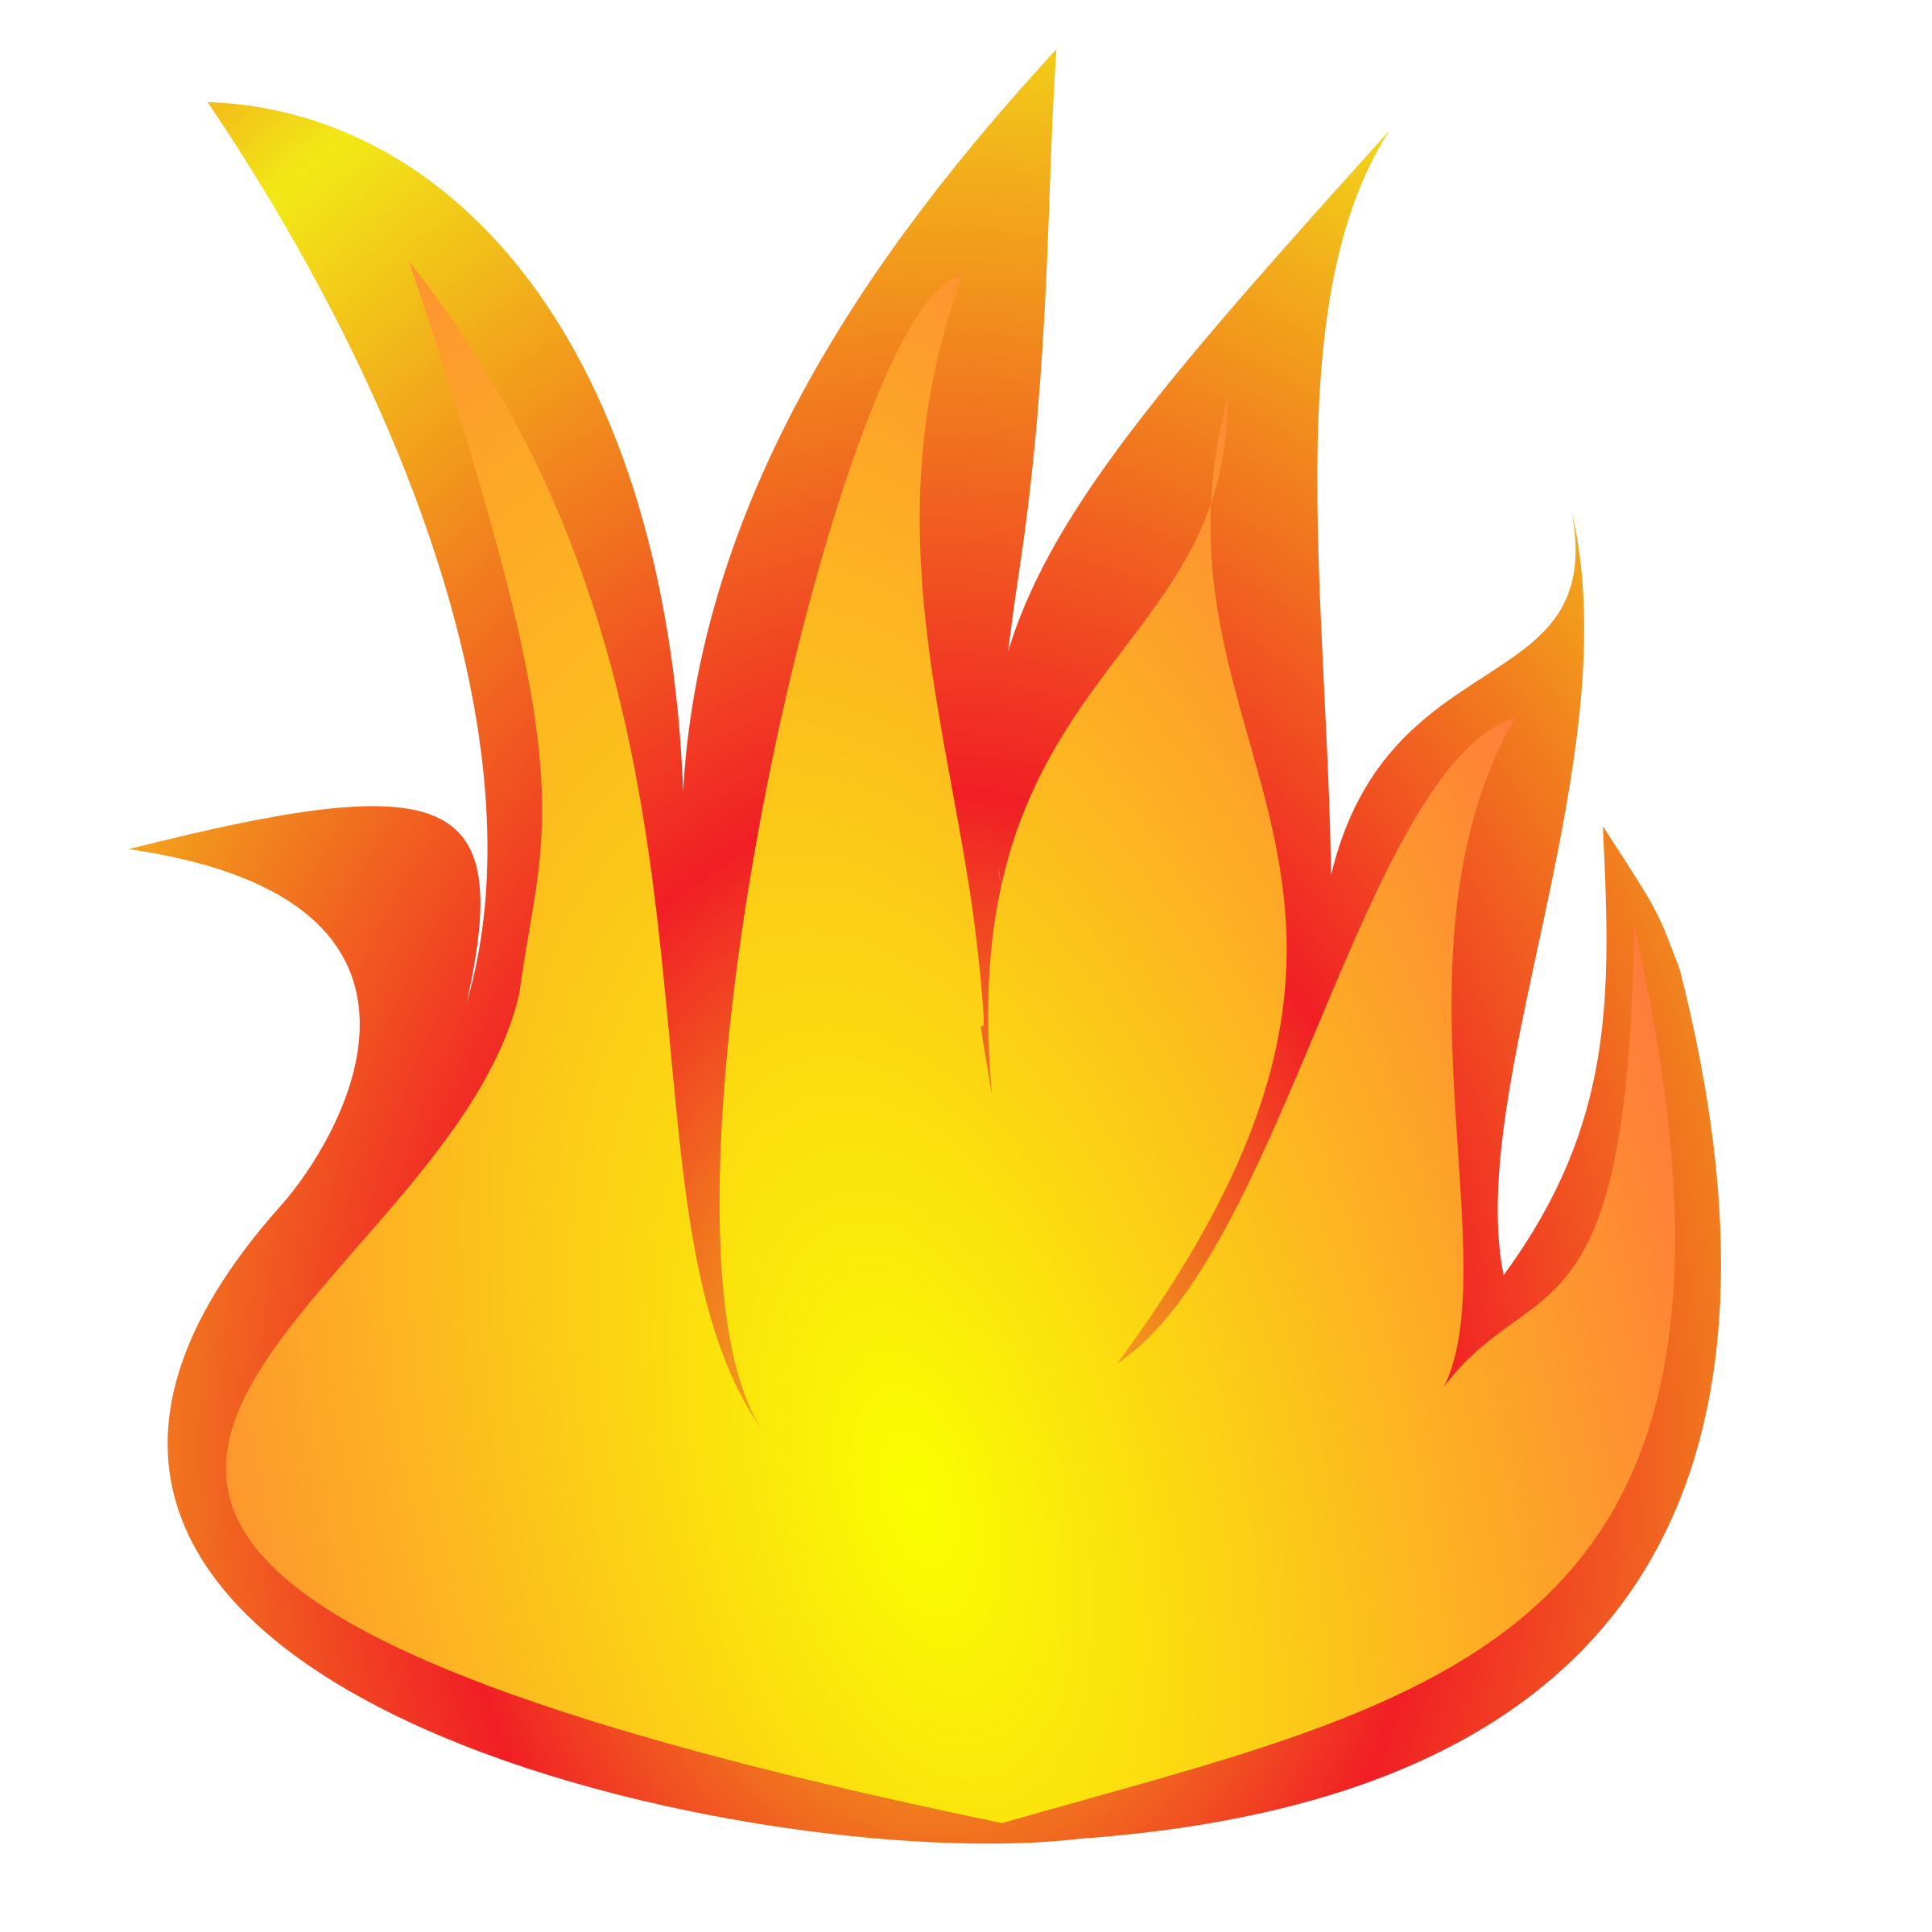 clipart transparent stock Fireplace clipart fireplace flames